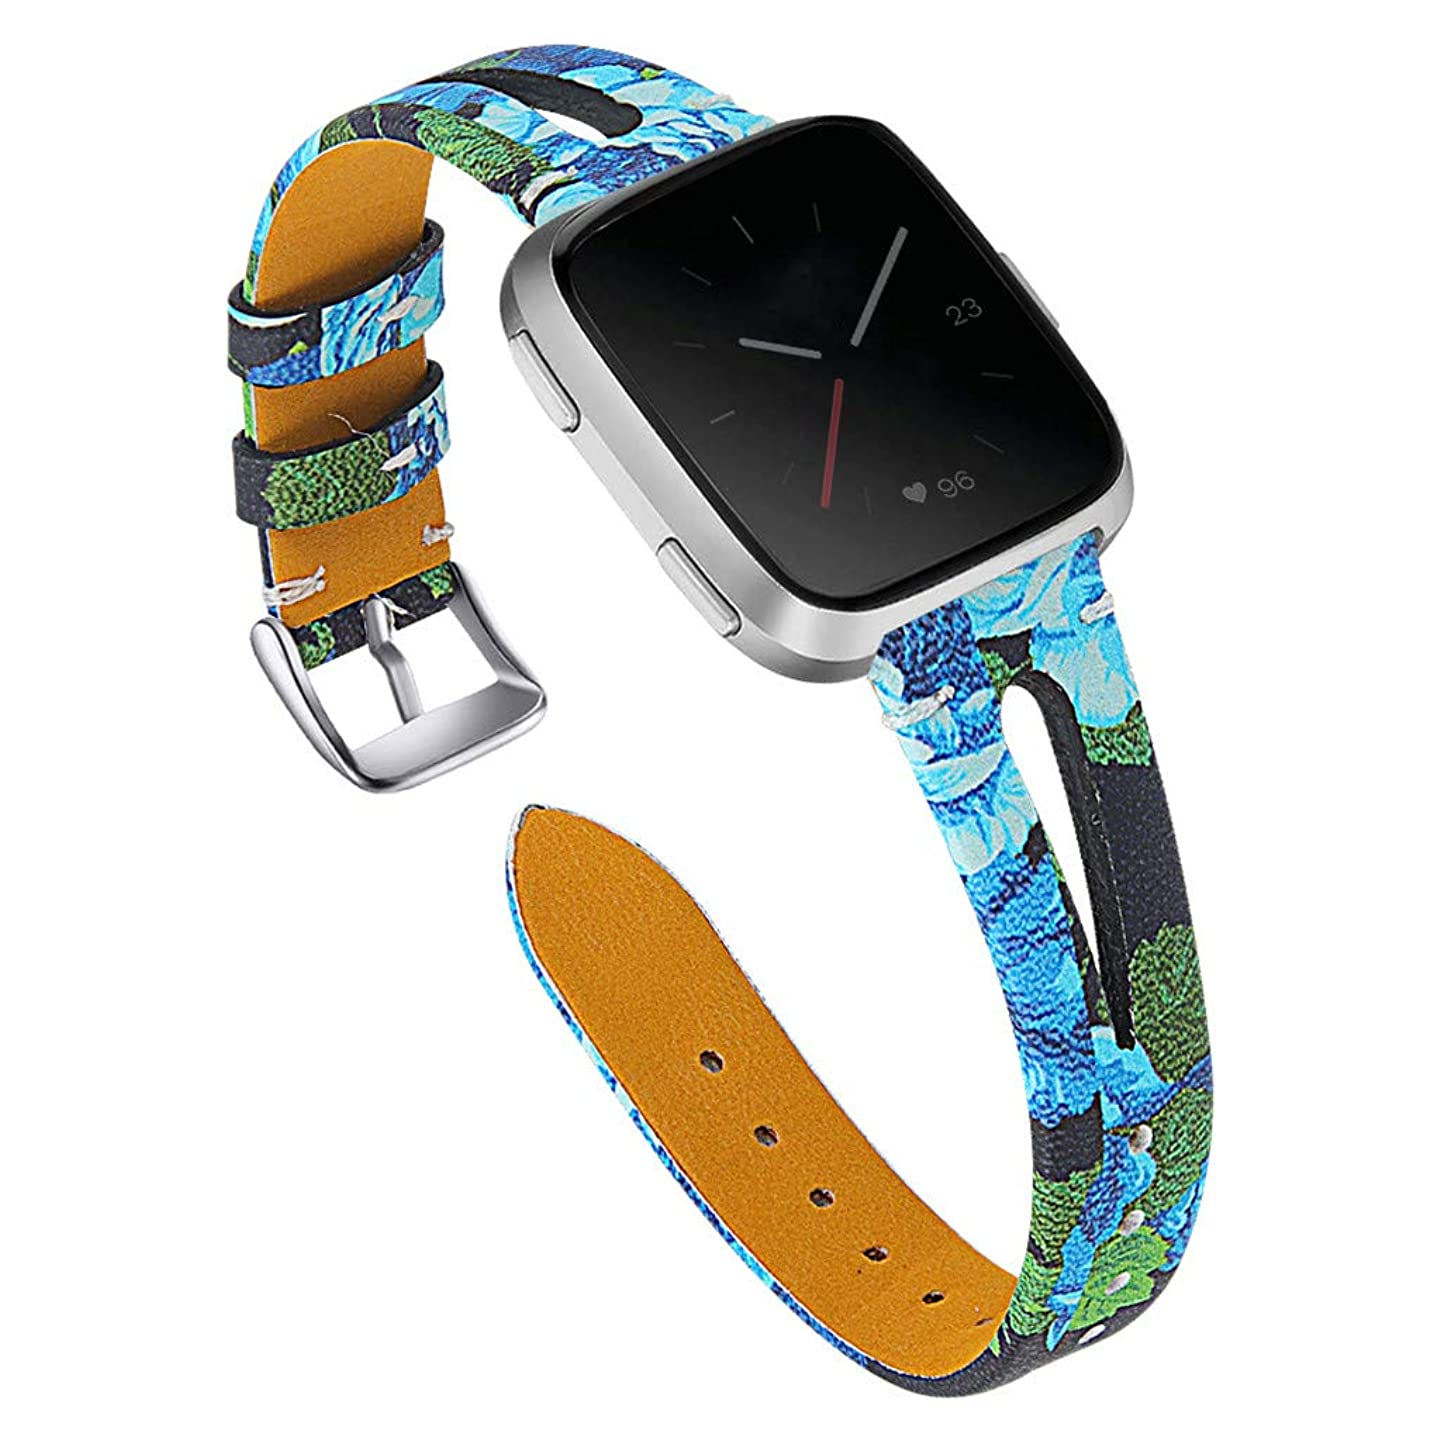 Pumsun Replacement Leather Strap Wrist Strap for Fitbit Versa,11 Colors Watch Band (J)